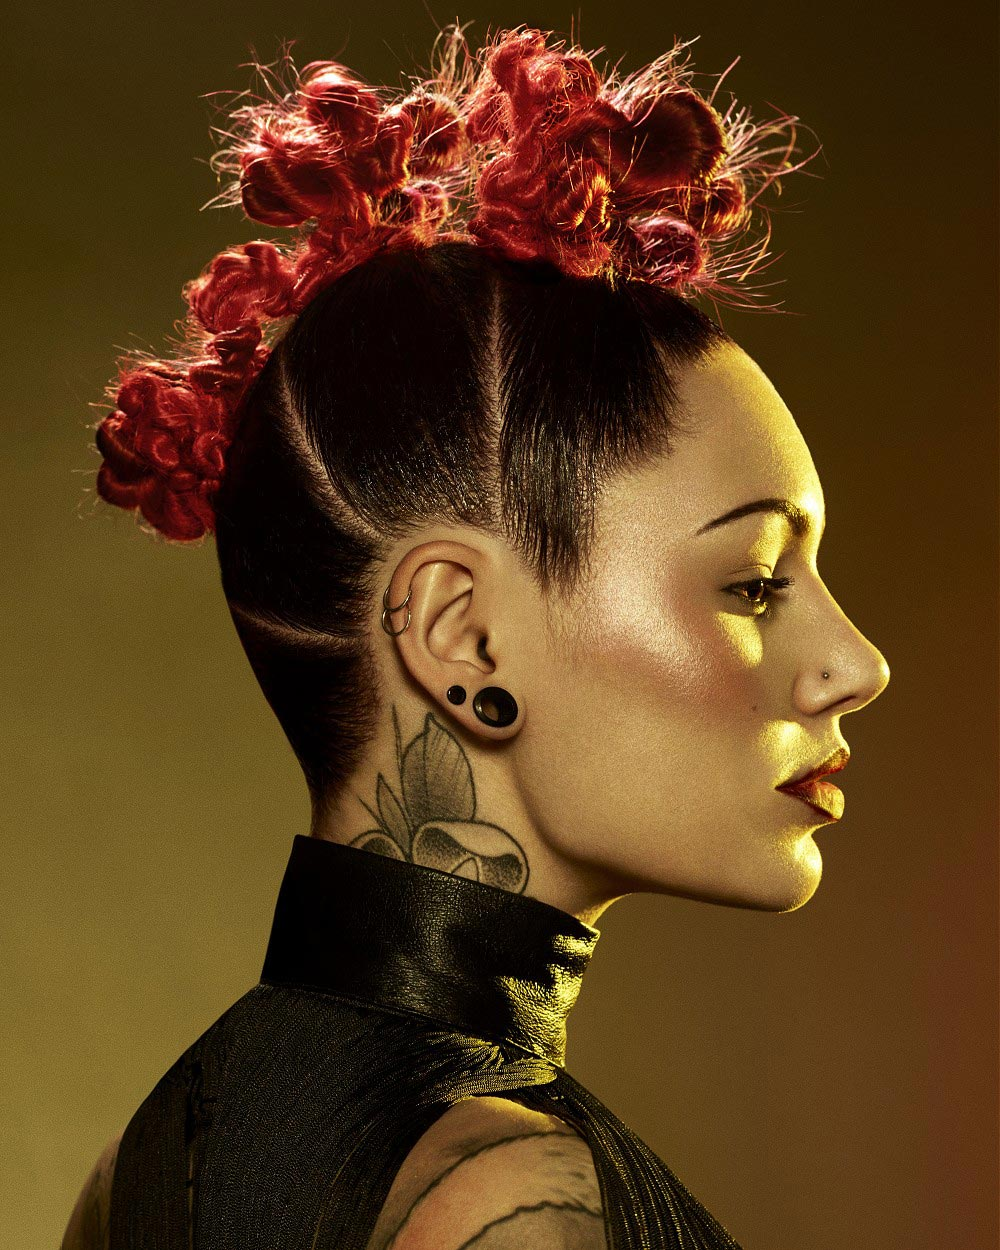 Drdol á la pletený mohawk z kolekce Halo Hair (vlasy: Joseph Ferraro @ Halo Hair & Beauty / Harrogate, barvy: Natalie Garcia Sanz, make-up: Emily Jane Williams, styling: Siouxsie, foto: Richard Miles.)